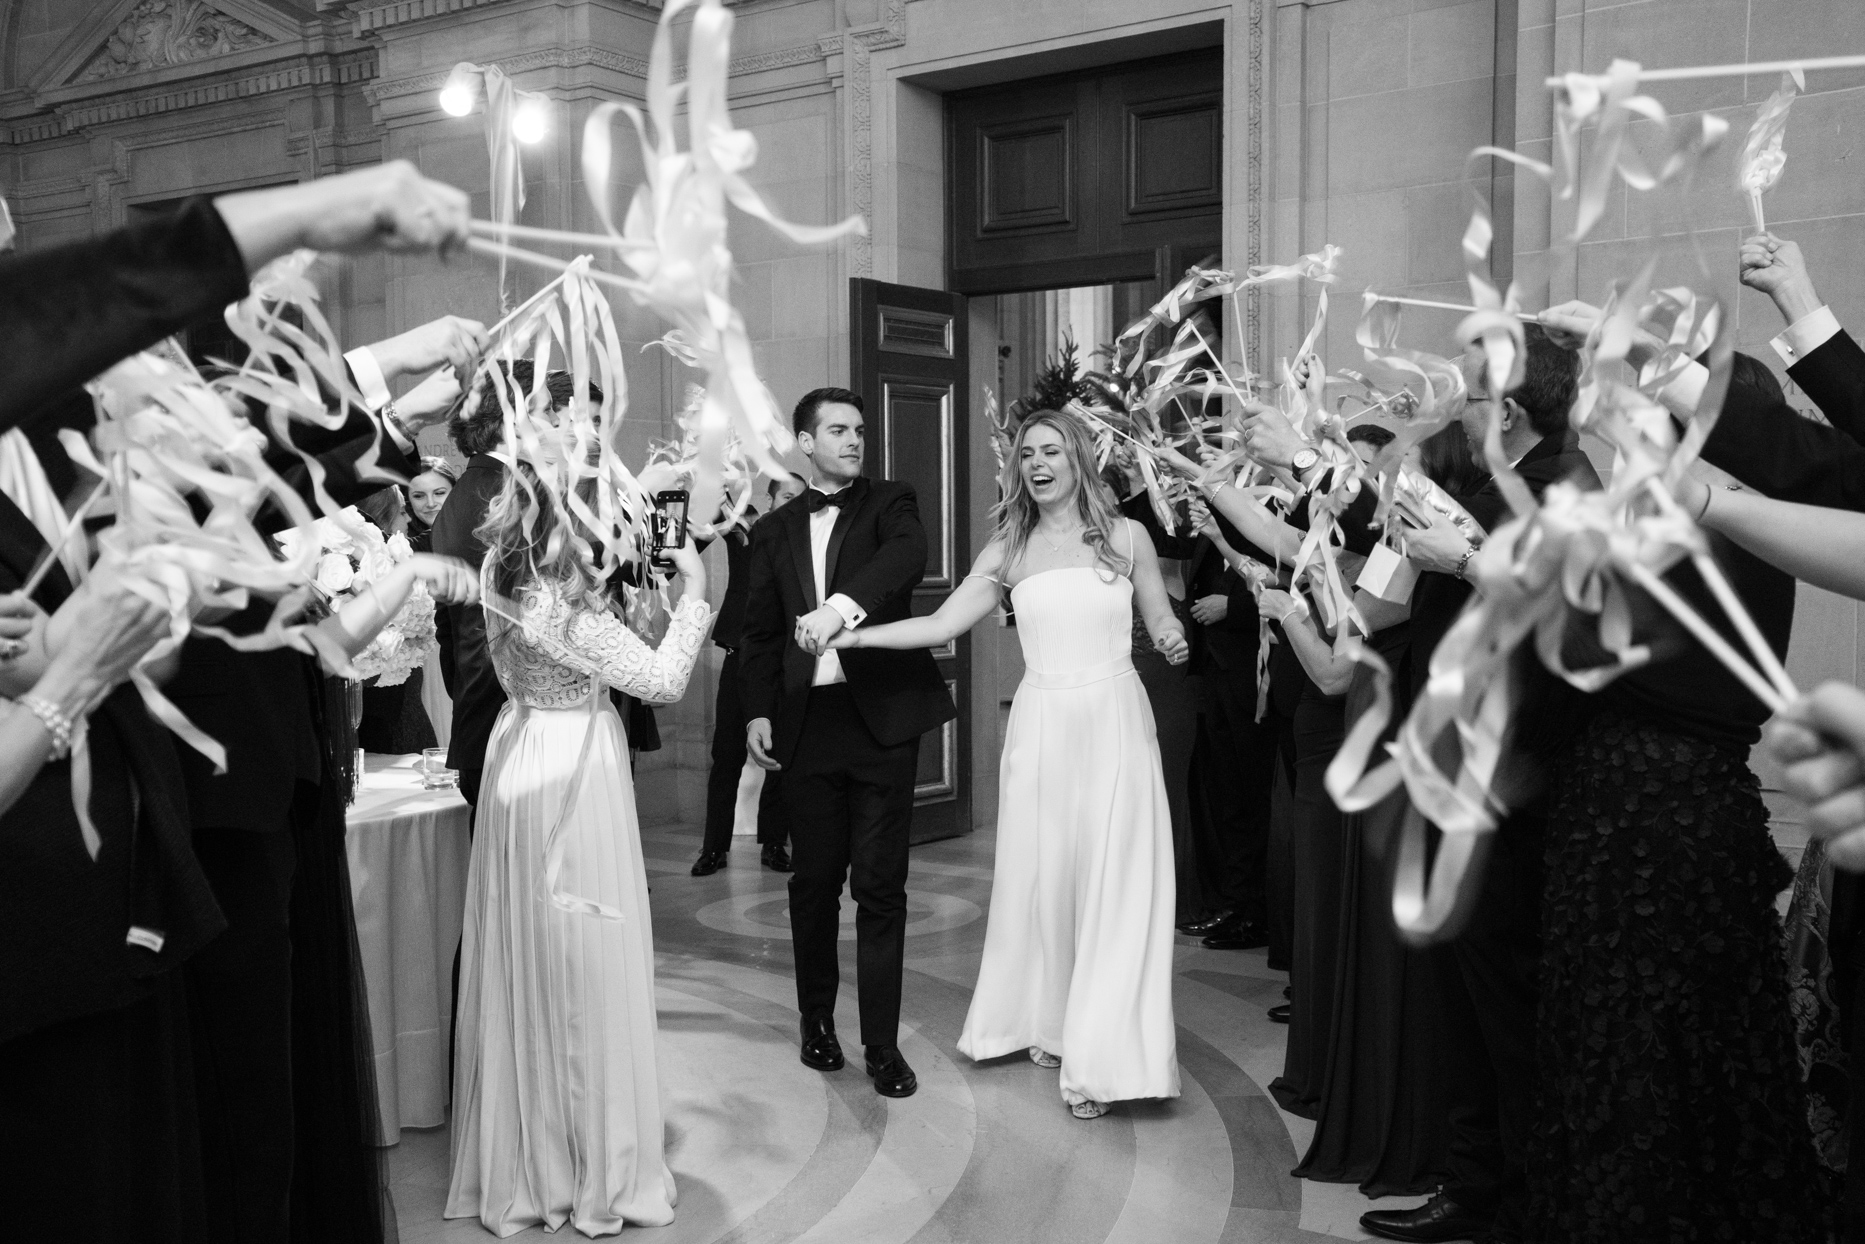 couple exiting wedding reception while guests hold streamers